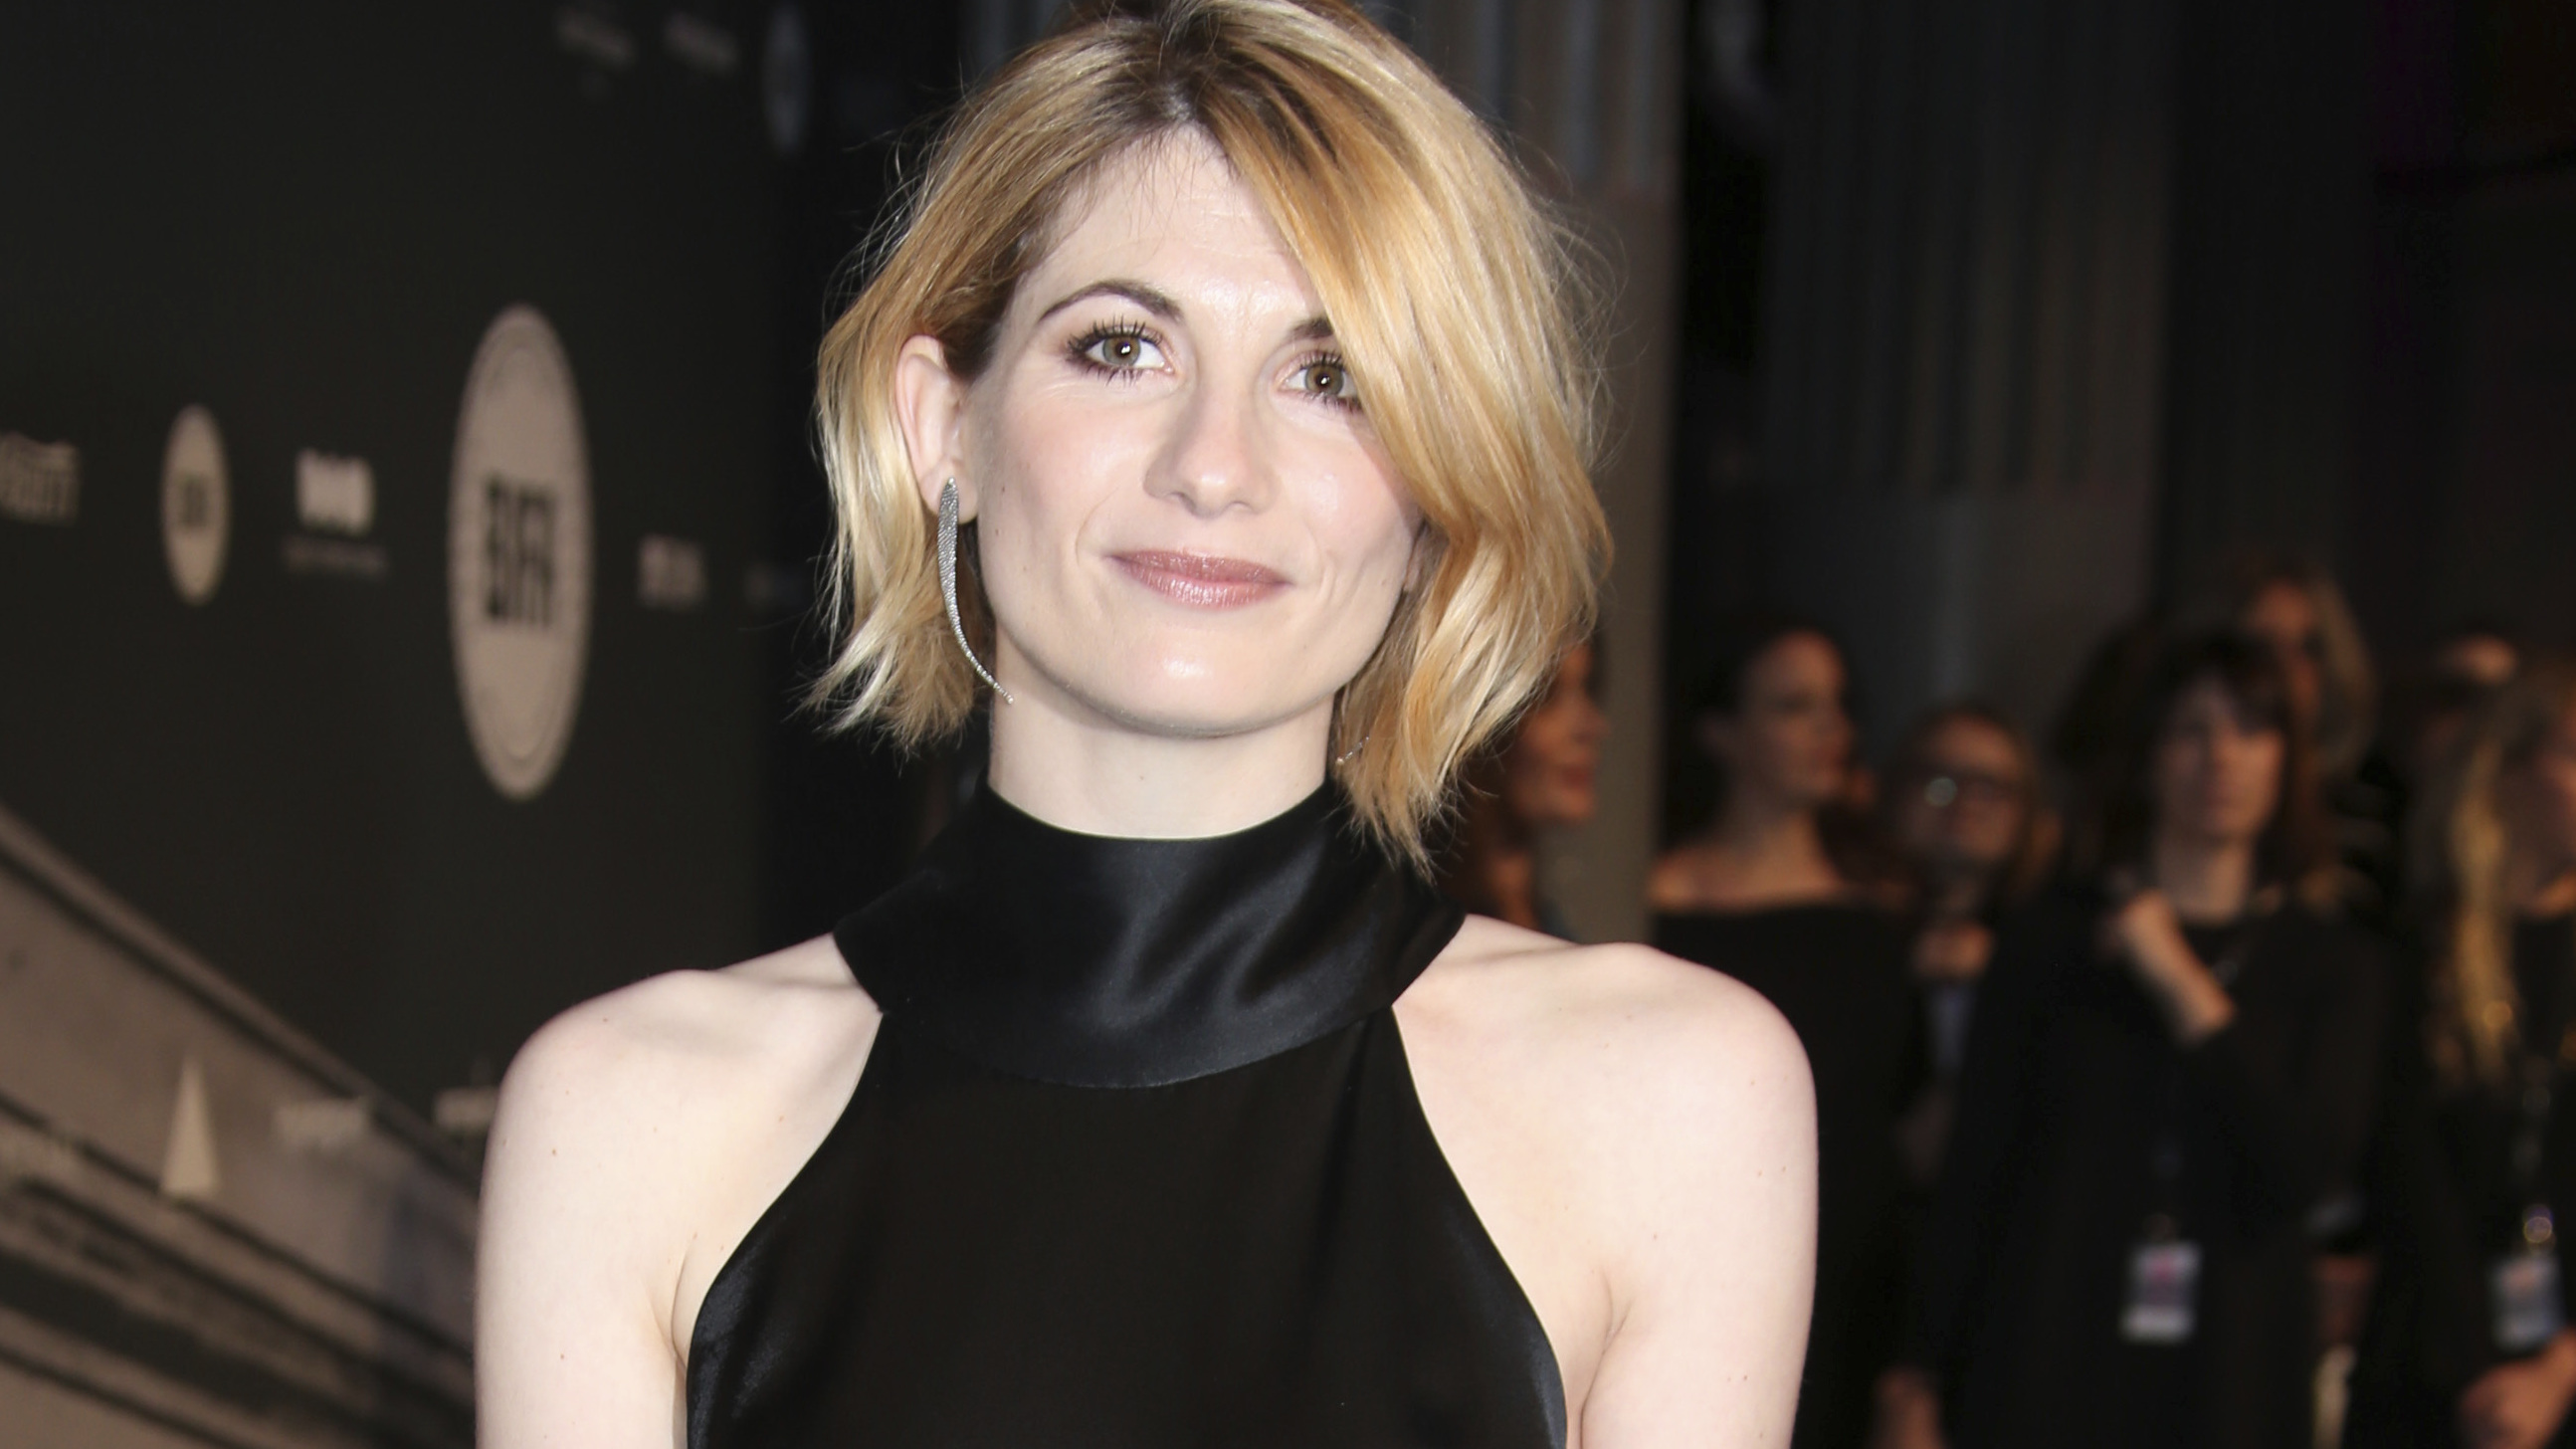 Actress Jodie Whittaker will be the first woman to play the role of the eccentric Time Lord. She